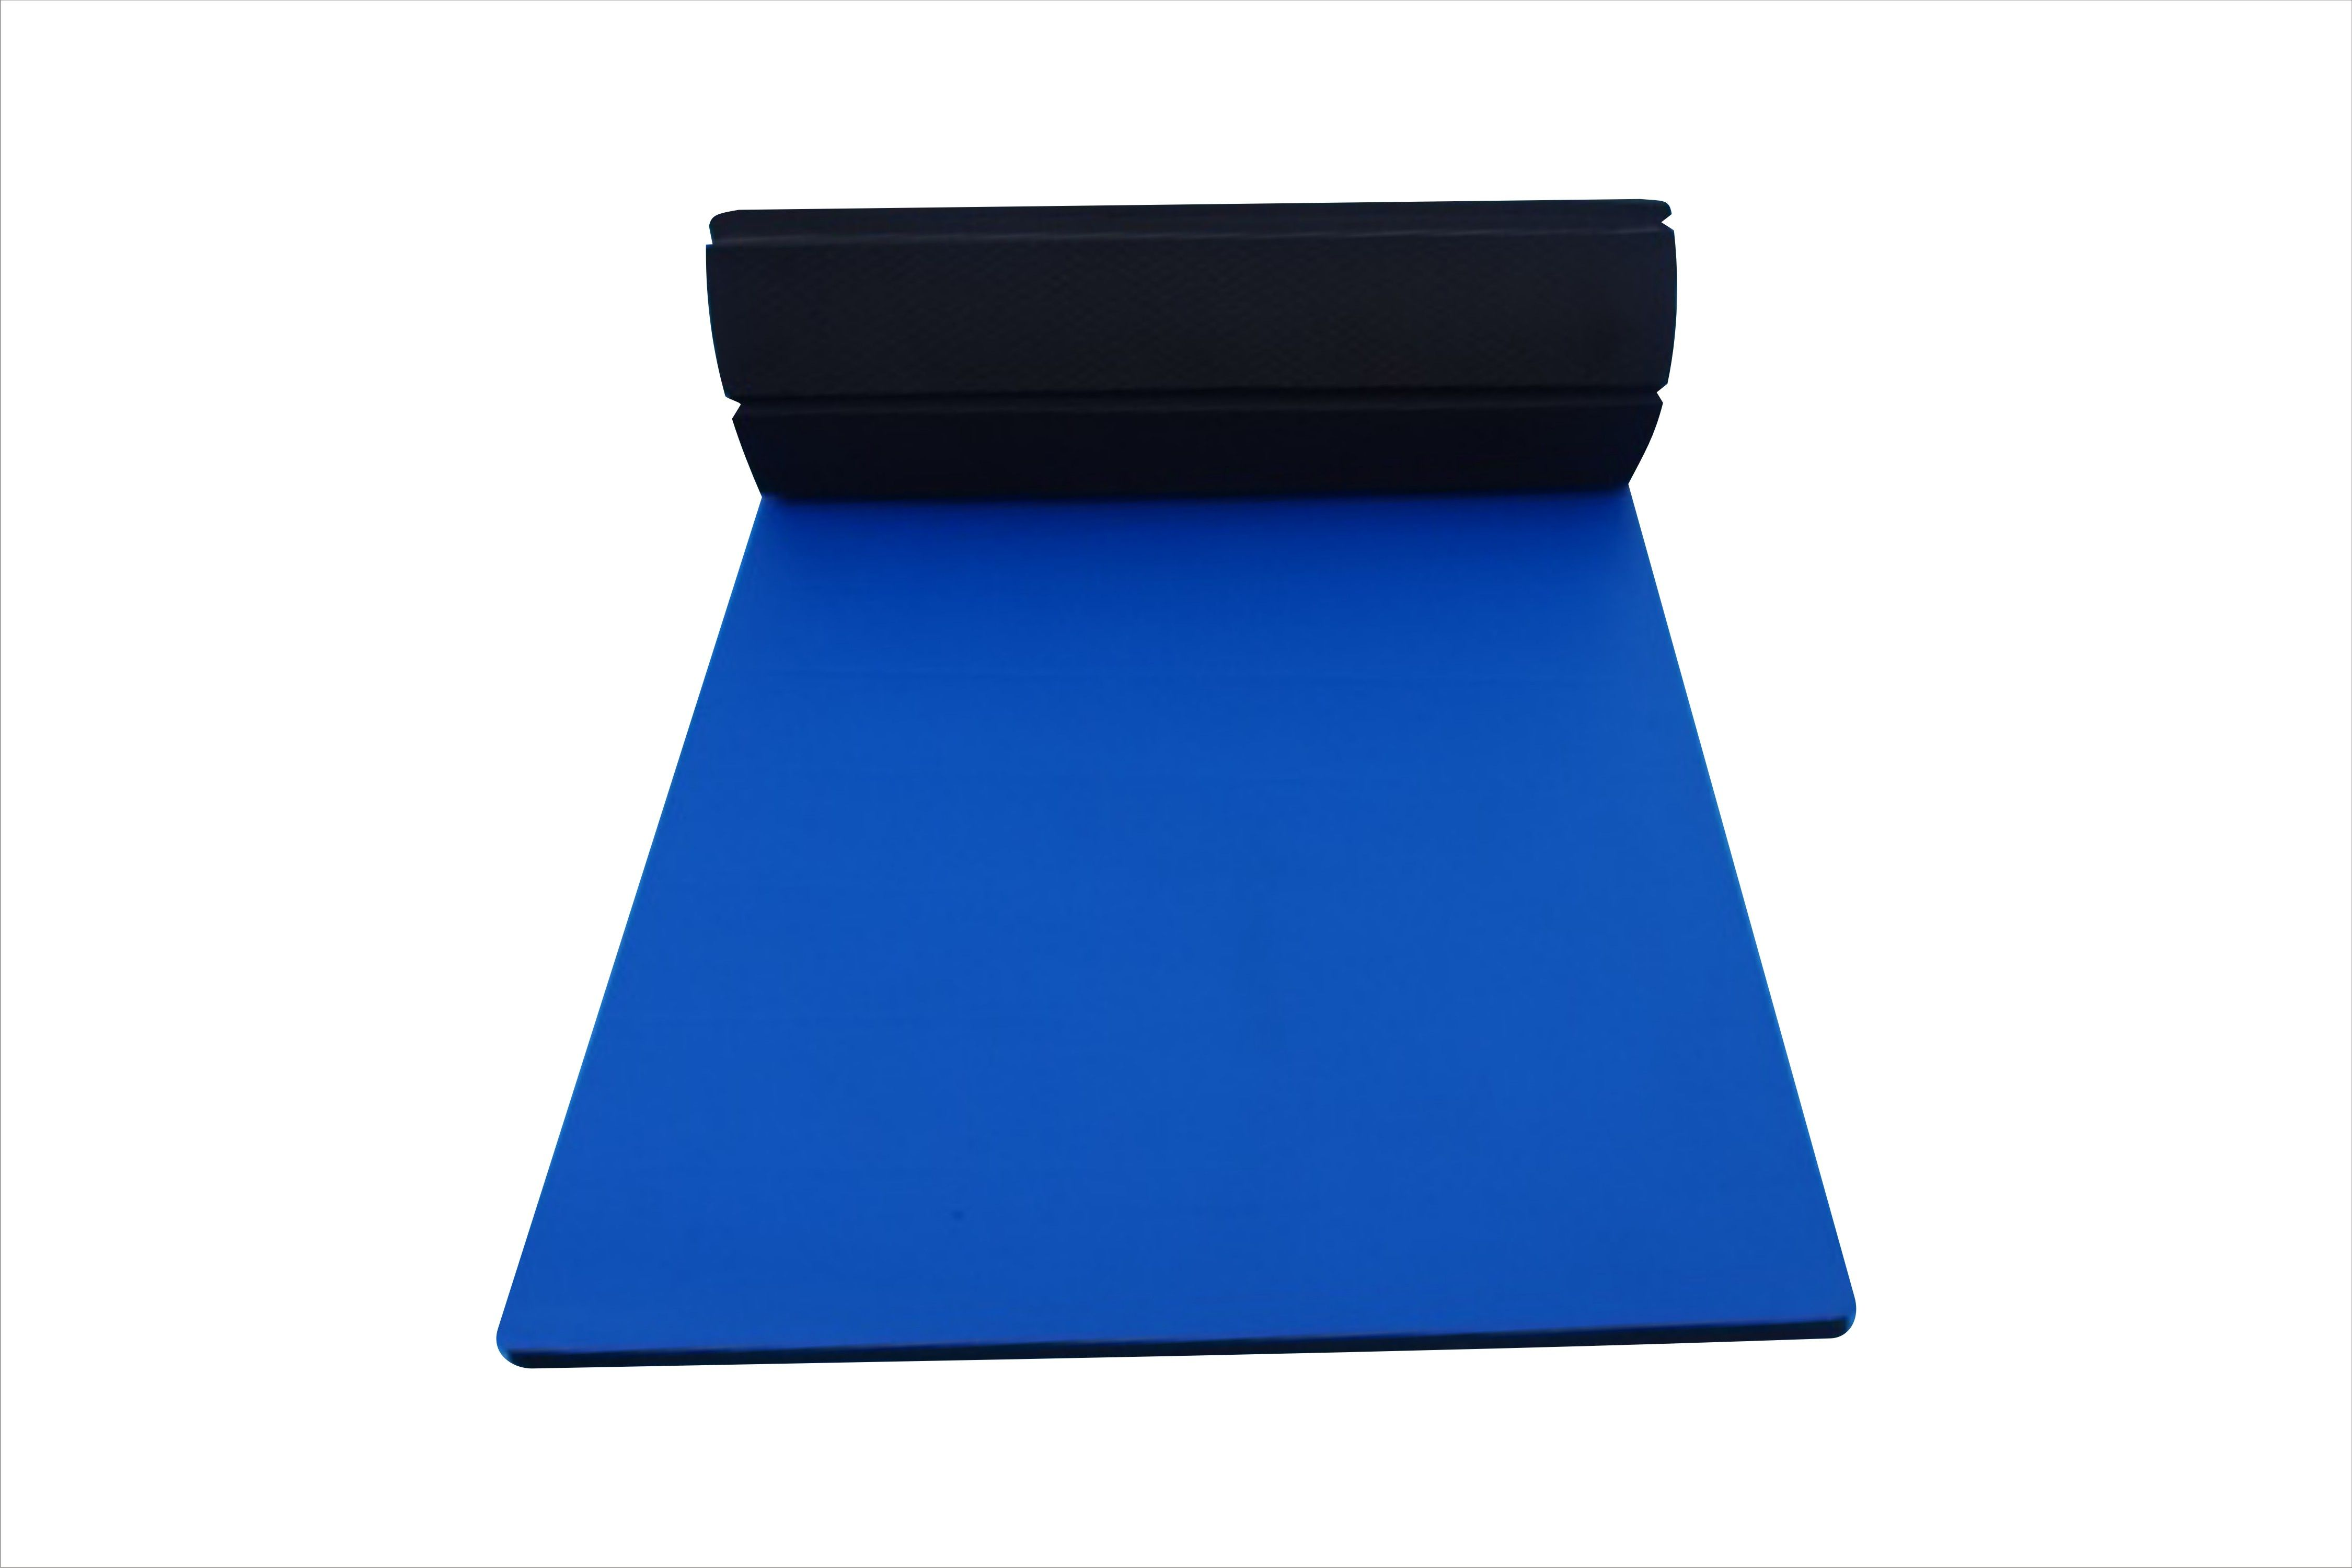 products gymnastic shop bestchoiceproducts choice rakuten mats exercise bi fitness folding landing mat w vinyl product best pad